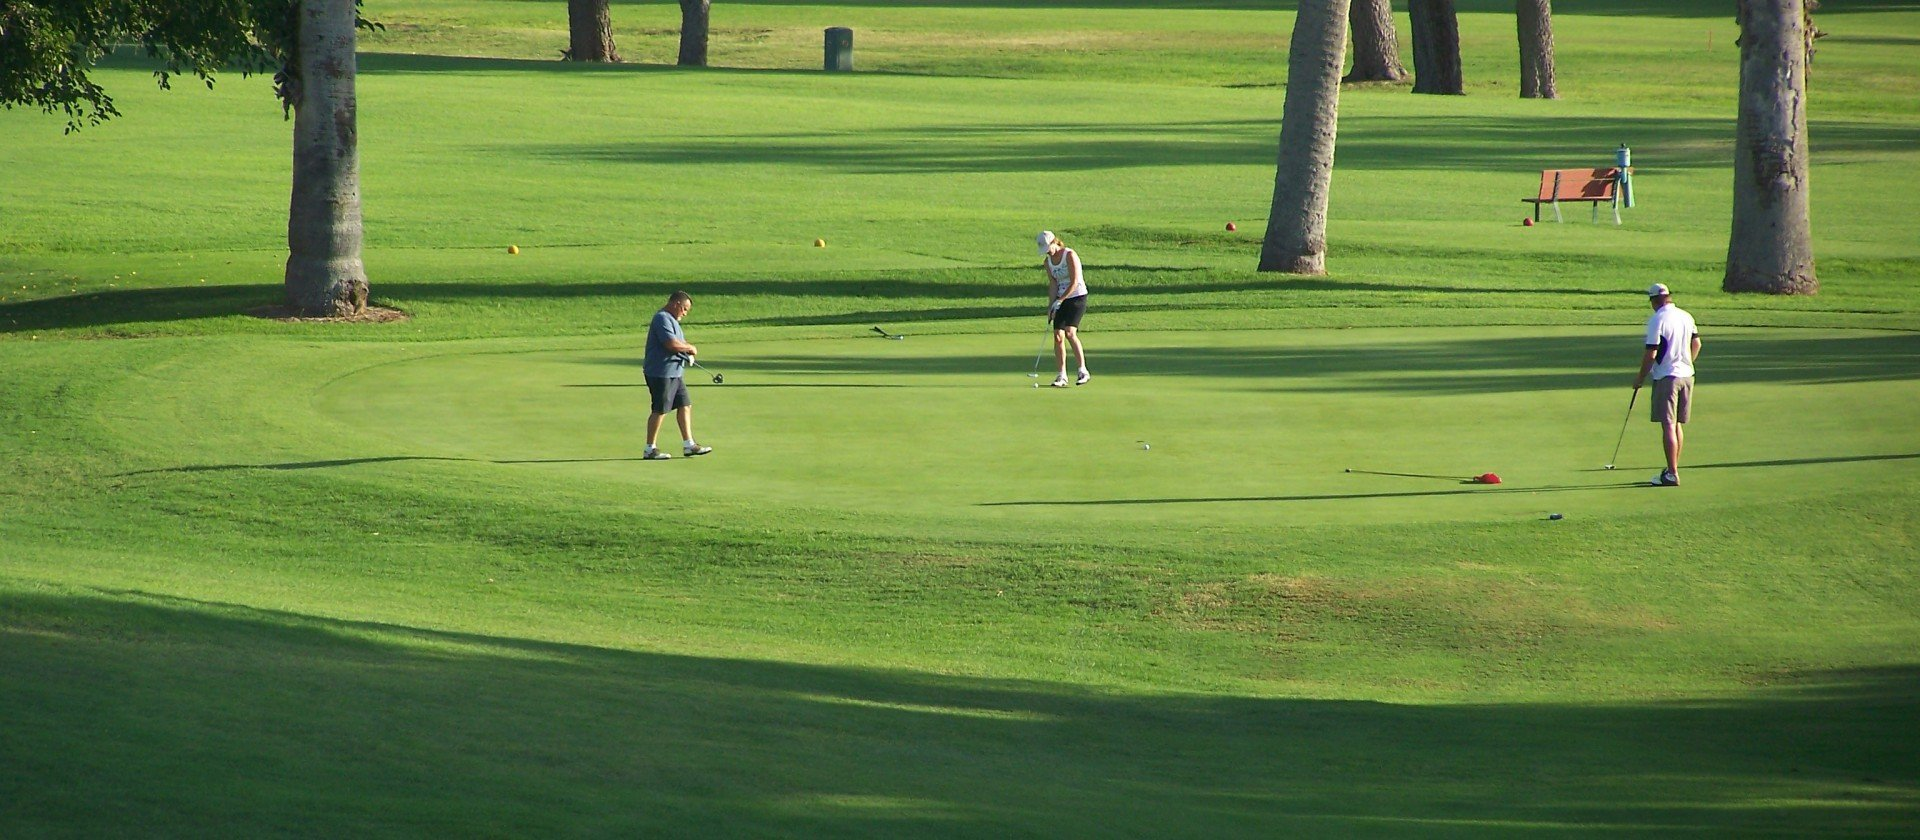 buena_vista_golf_course_credit_bakersfield_cvb_1__large